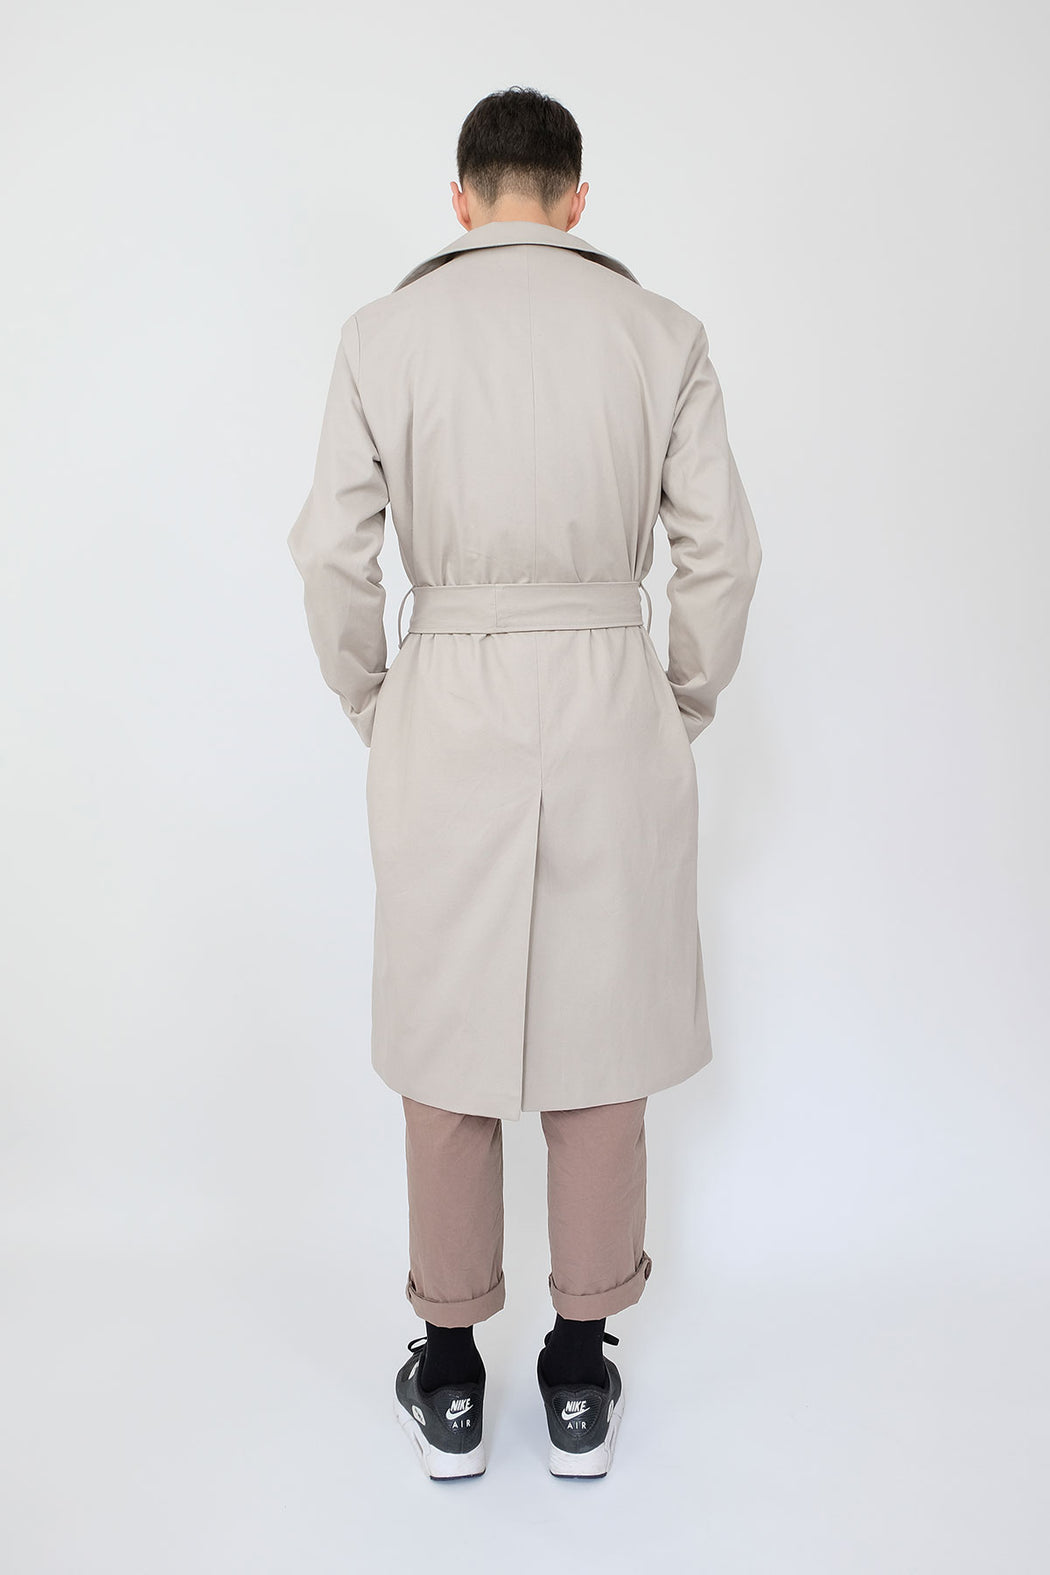 LF Trench Coat in Moonshine Grey